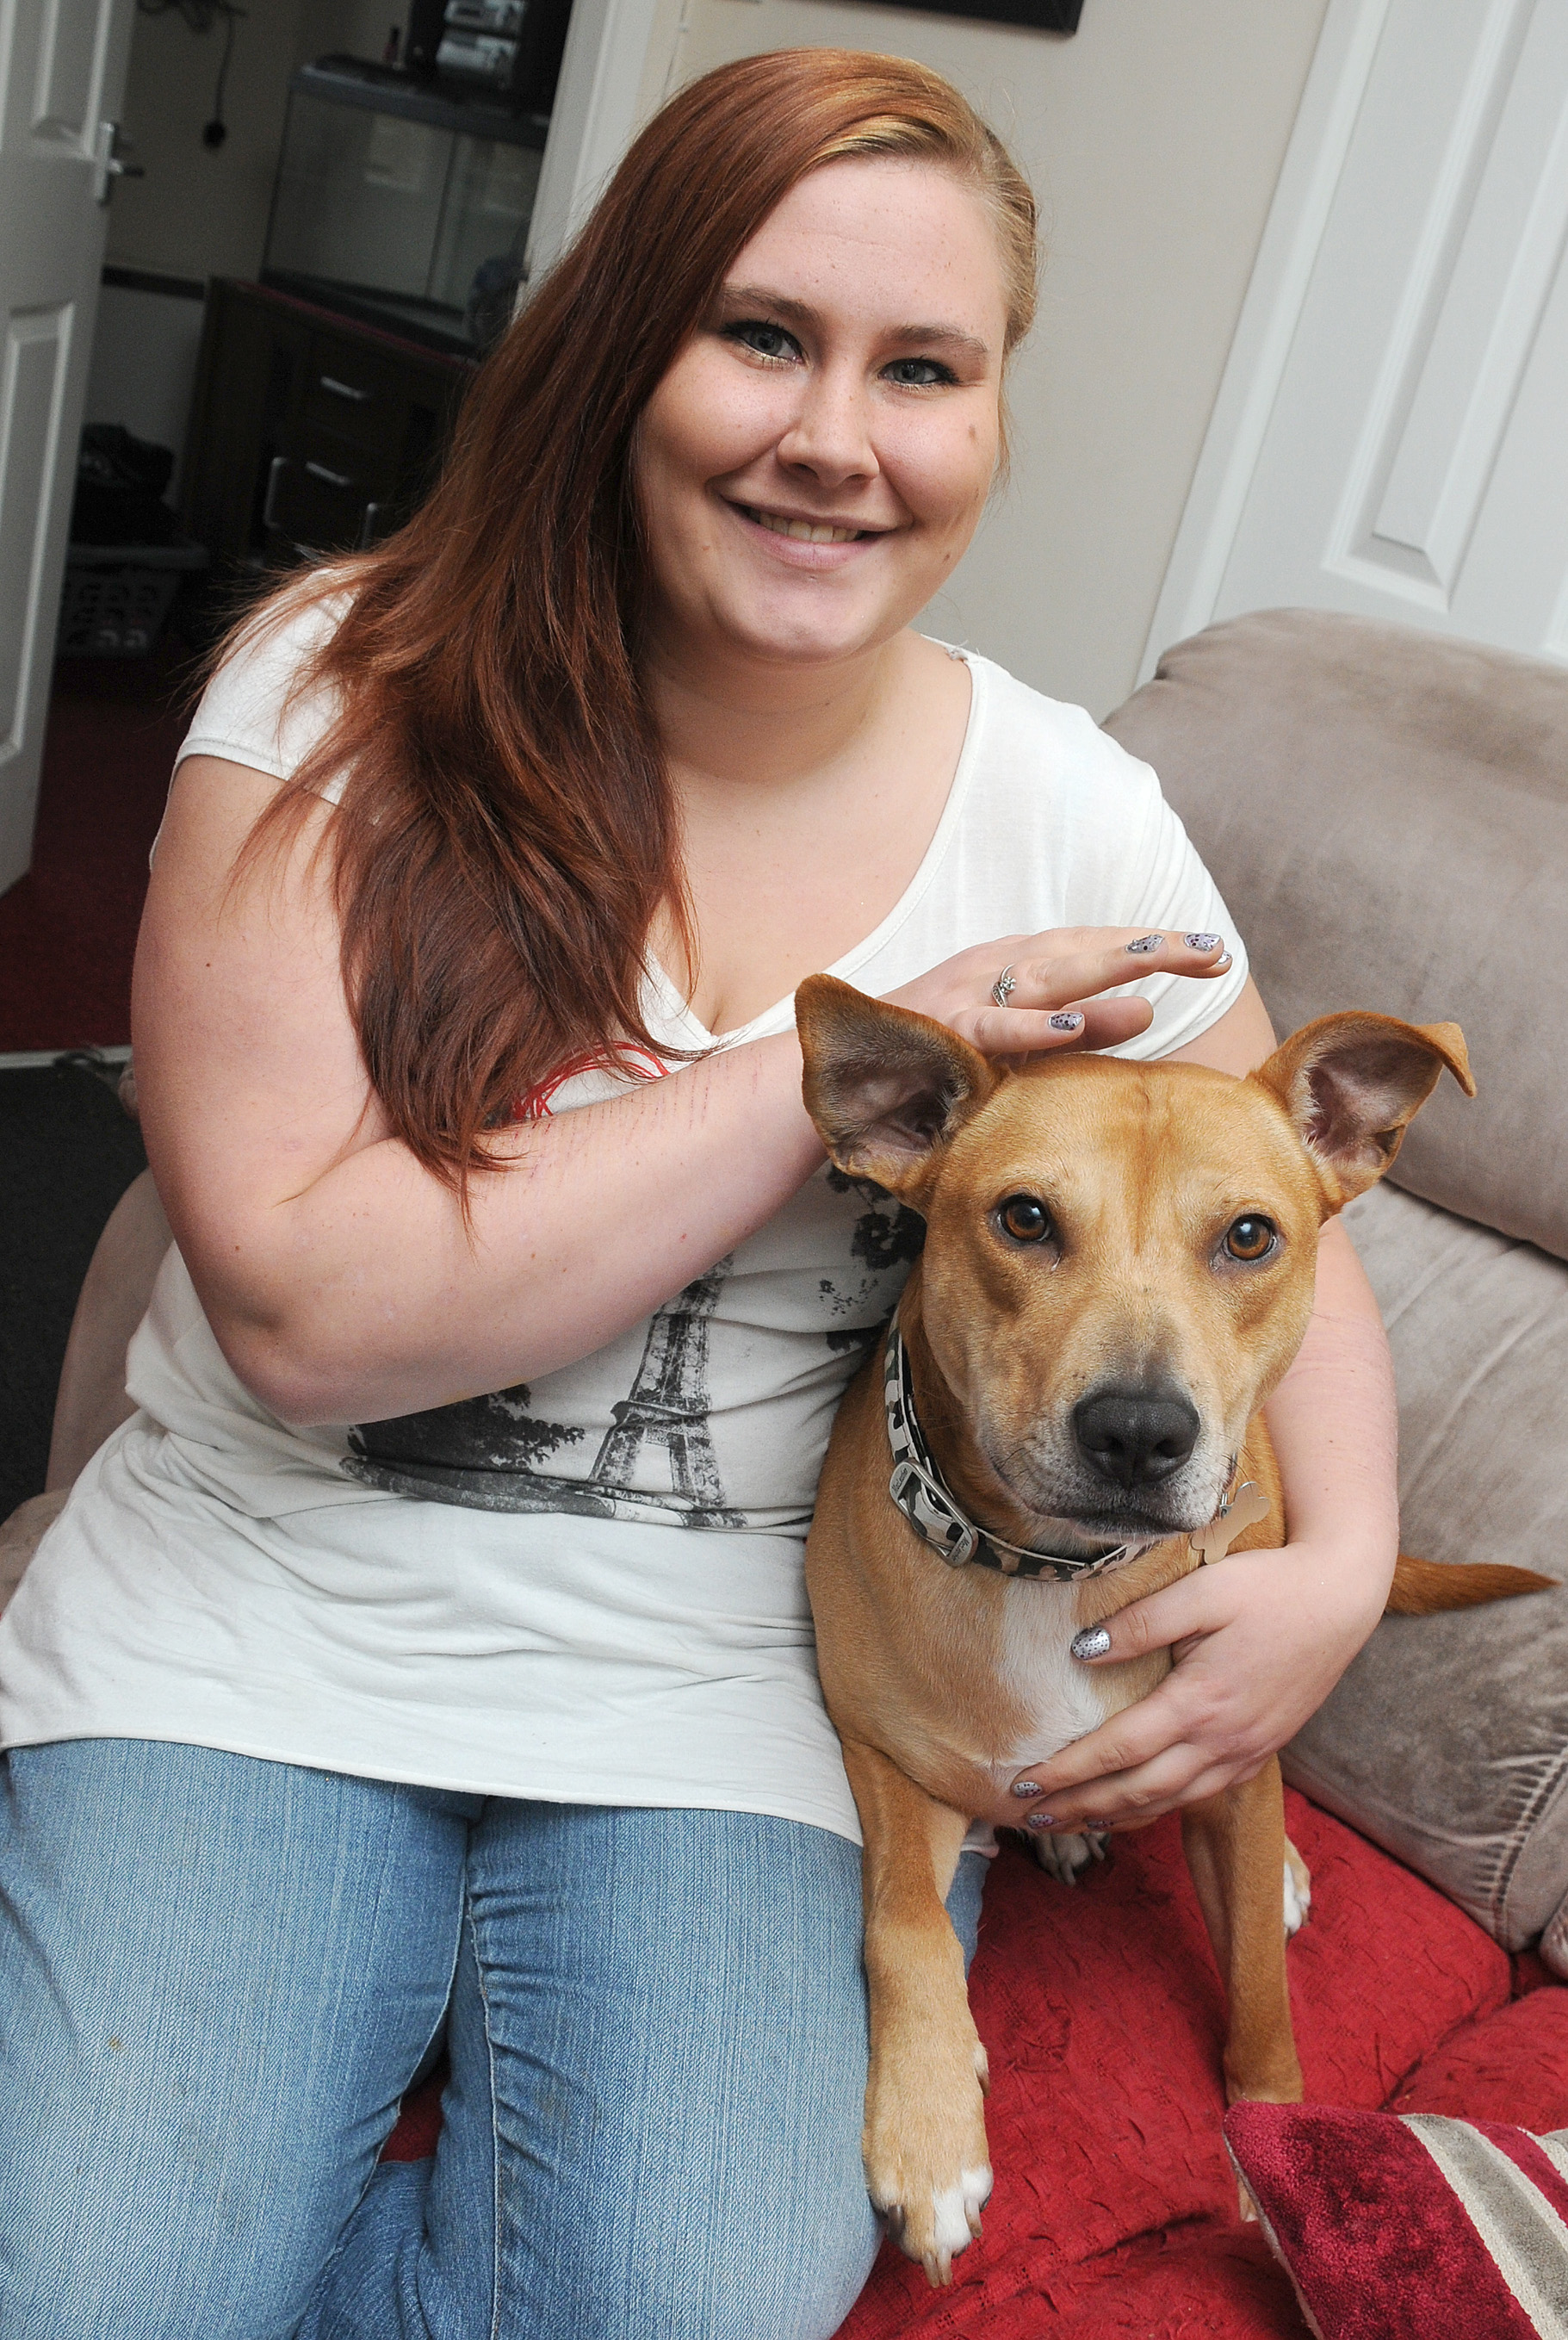 Dog therapy helps Grappenhall woman in time of need